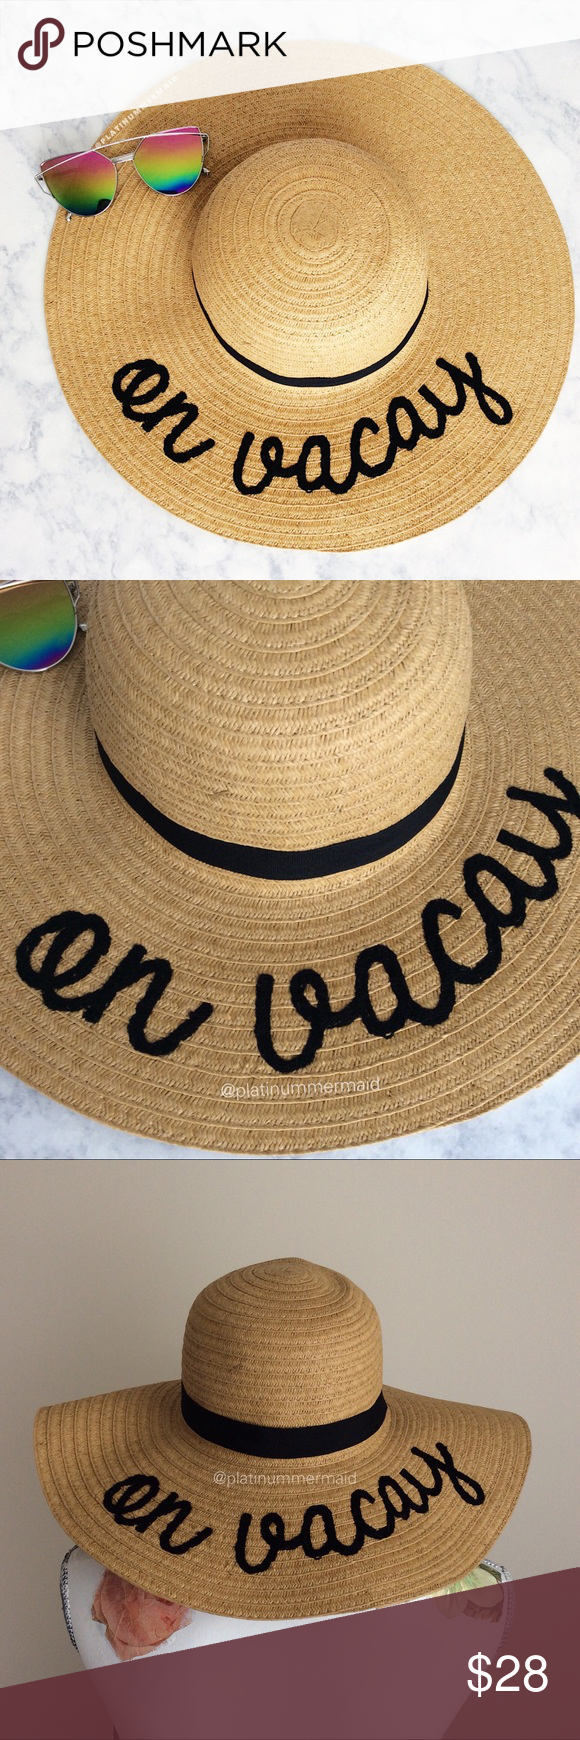 Embroidered Straw Hat NWT Brand new with tags Premium Embroidered On Vacay  Floppy Straw Hat Fashion 488dfa532fbc